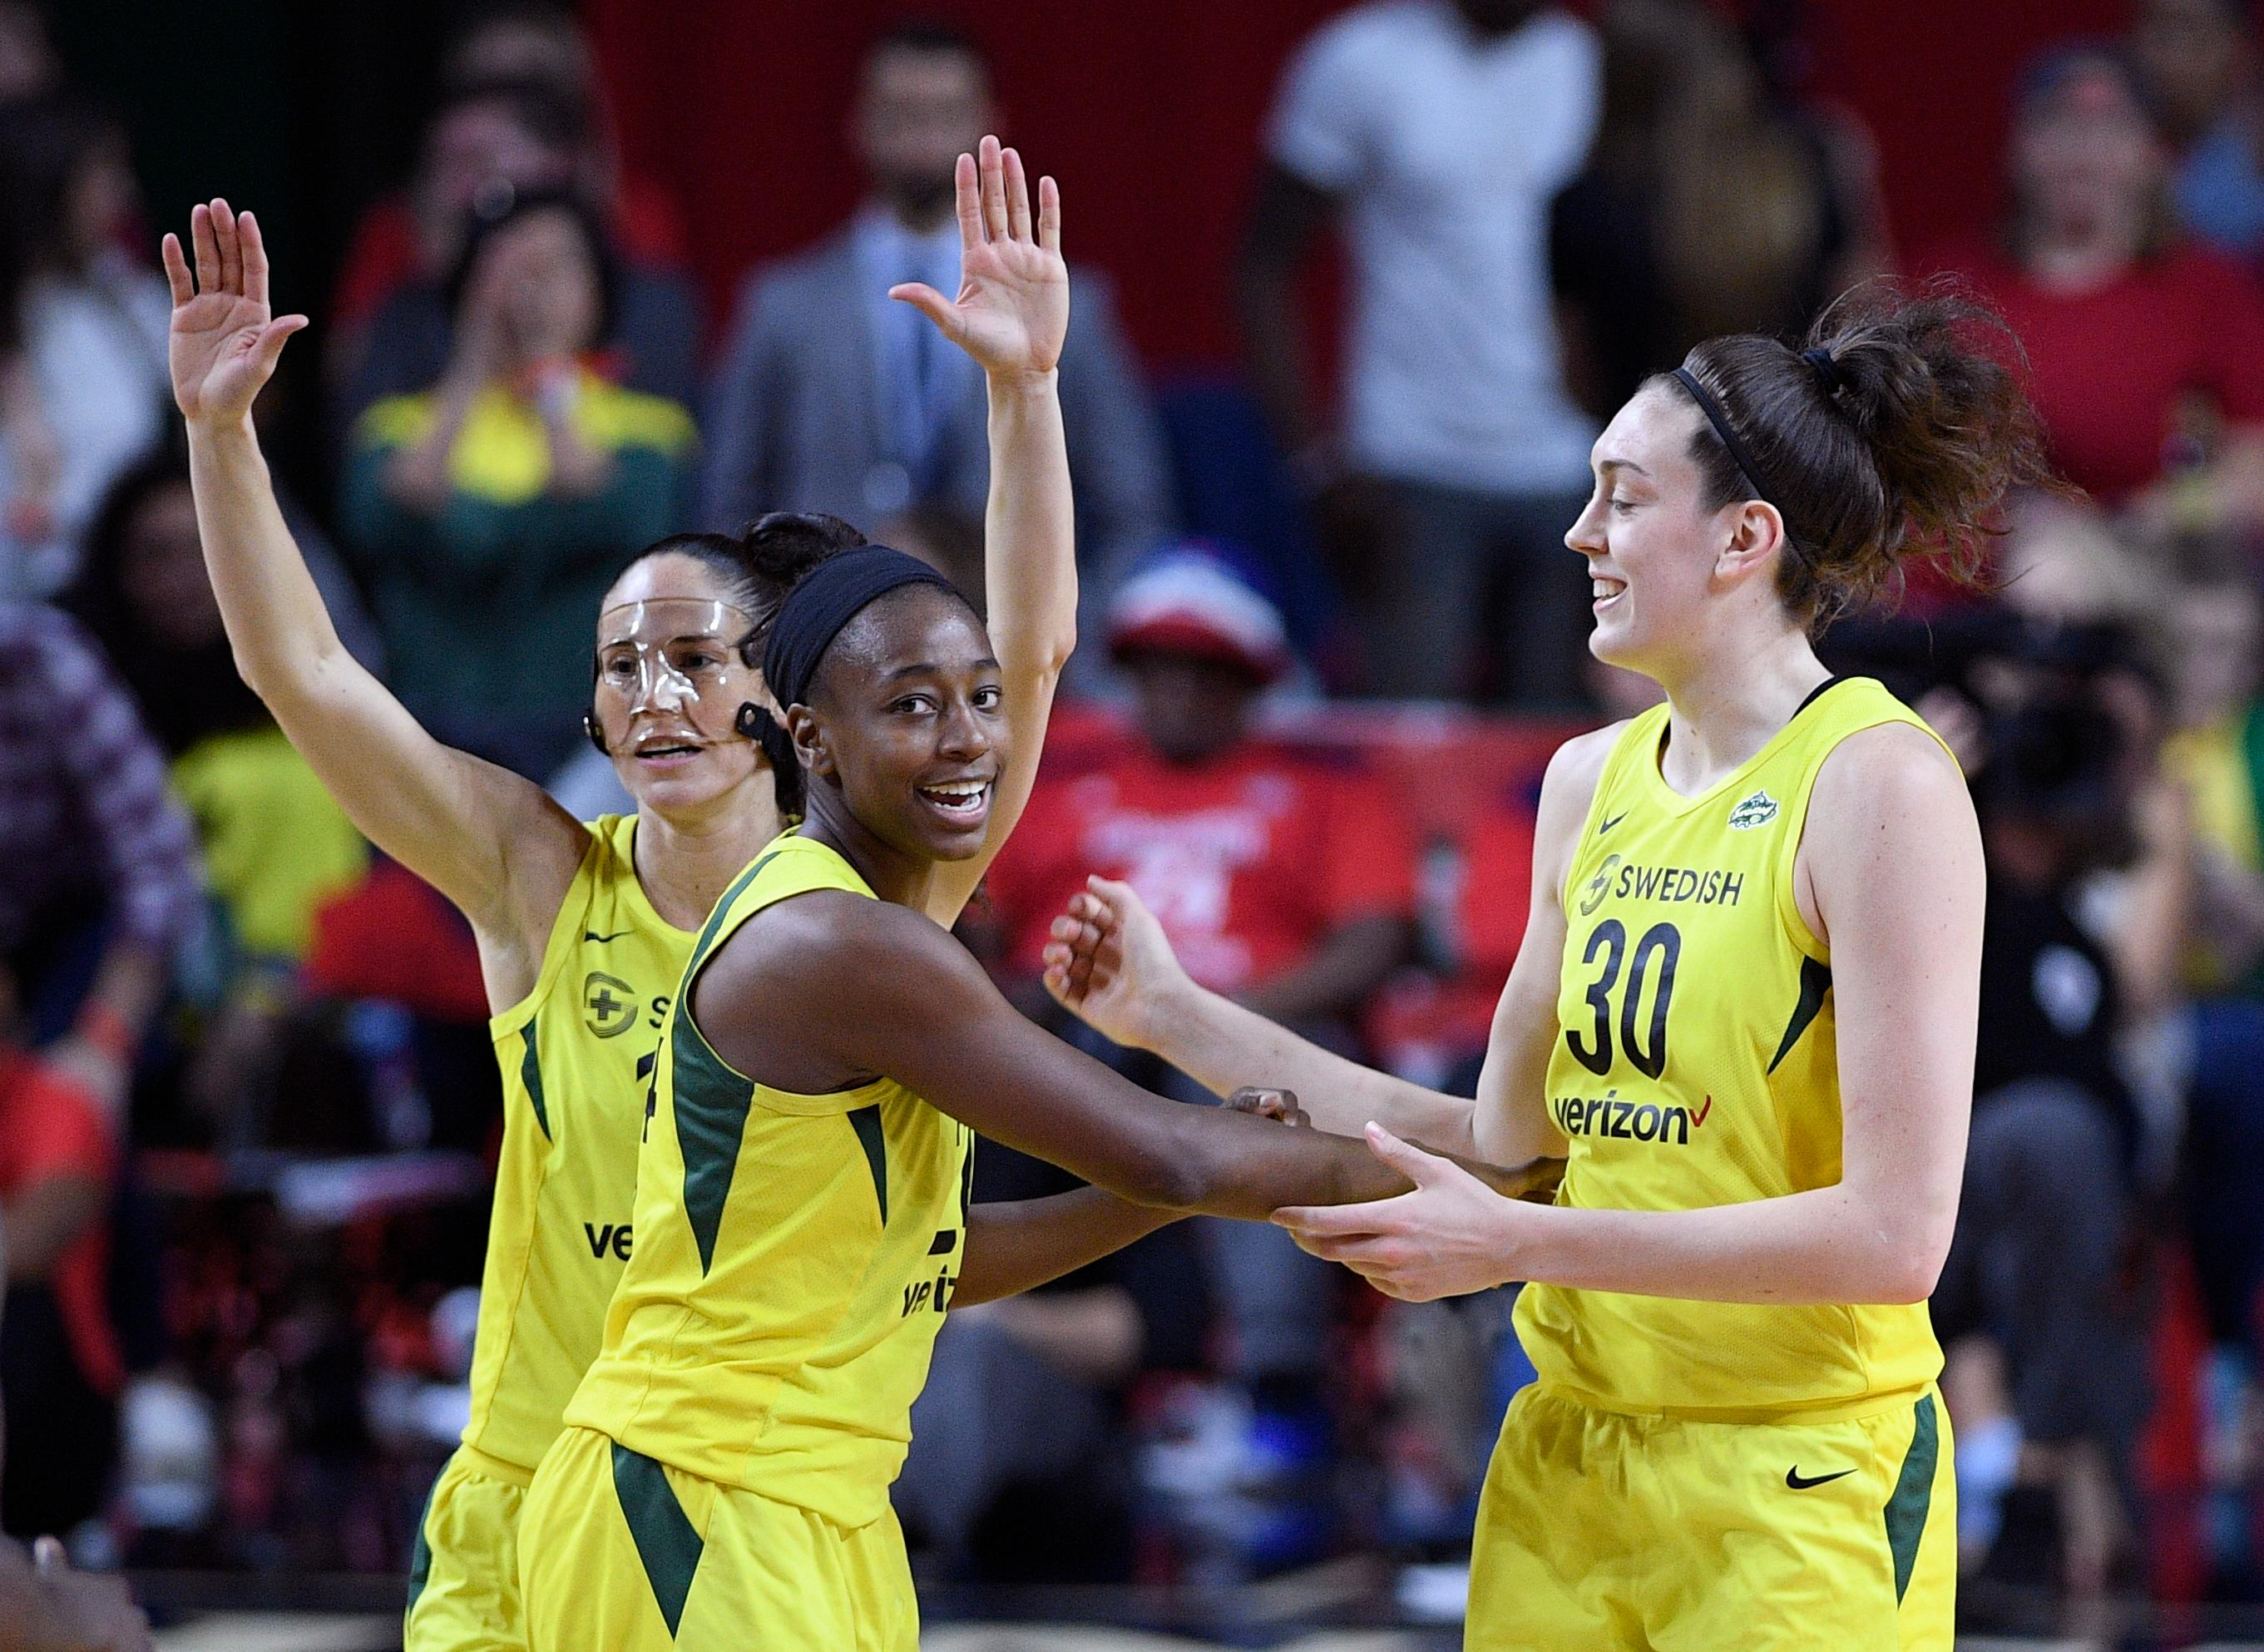 Seattle Storm guard Sue Bird, back left, Jewell Loyd, center, and Breanna Stewart (30) react during the first half of Game 3 of the WNBA basketball finals against the Washington Mystics, Wednesday, Sept. 12, 2018, in Fairfax, Va. (AP Photo/Nick Wass)